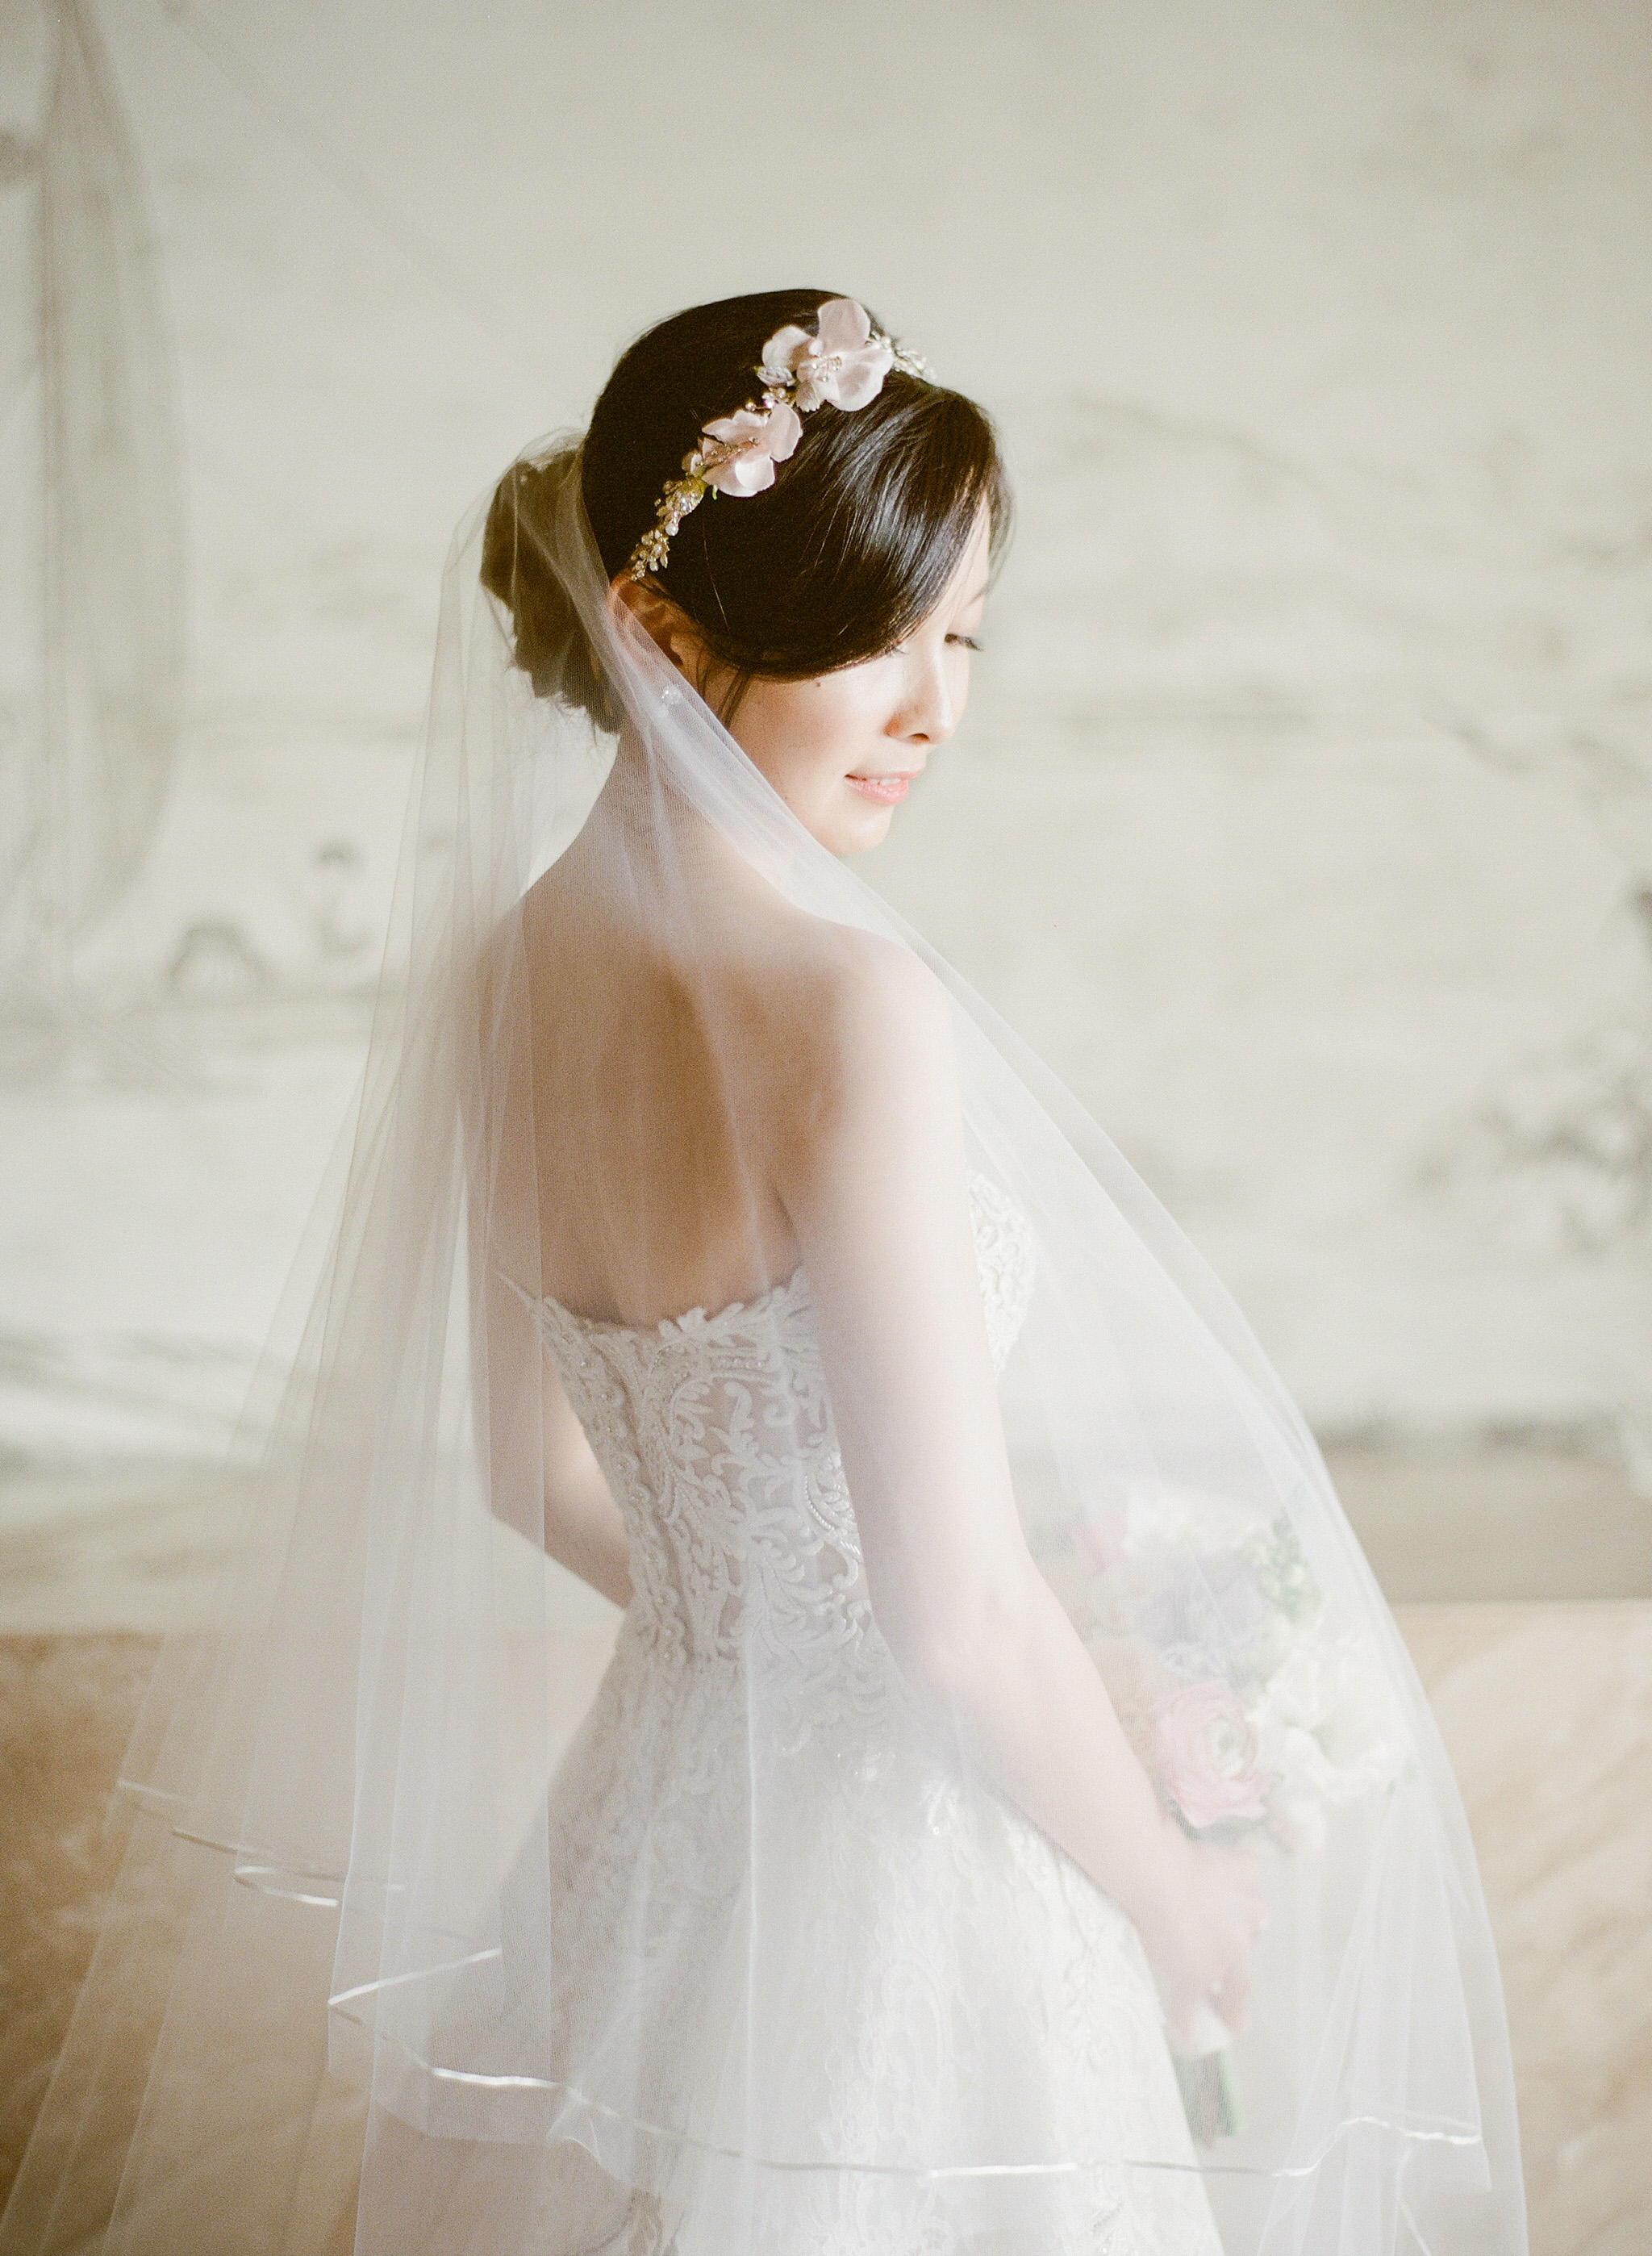 bride wedding gown floral headpiece tulle veil